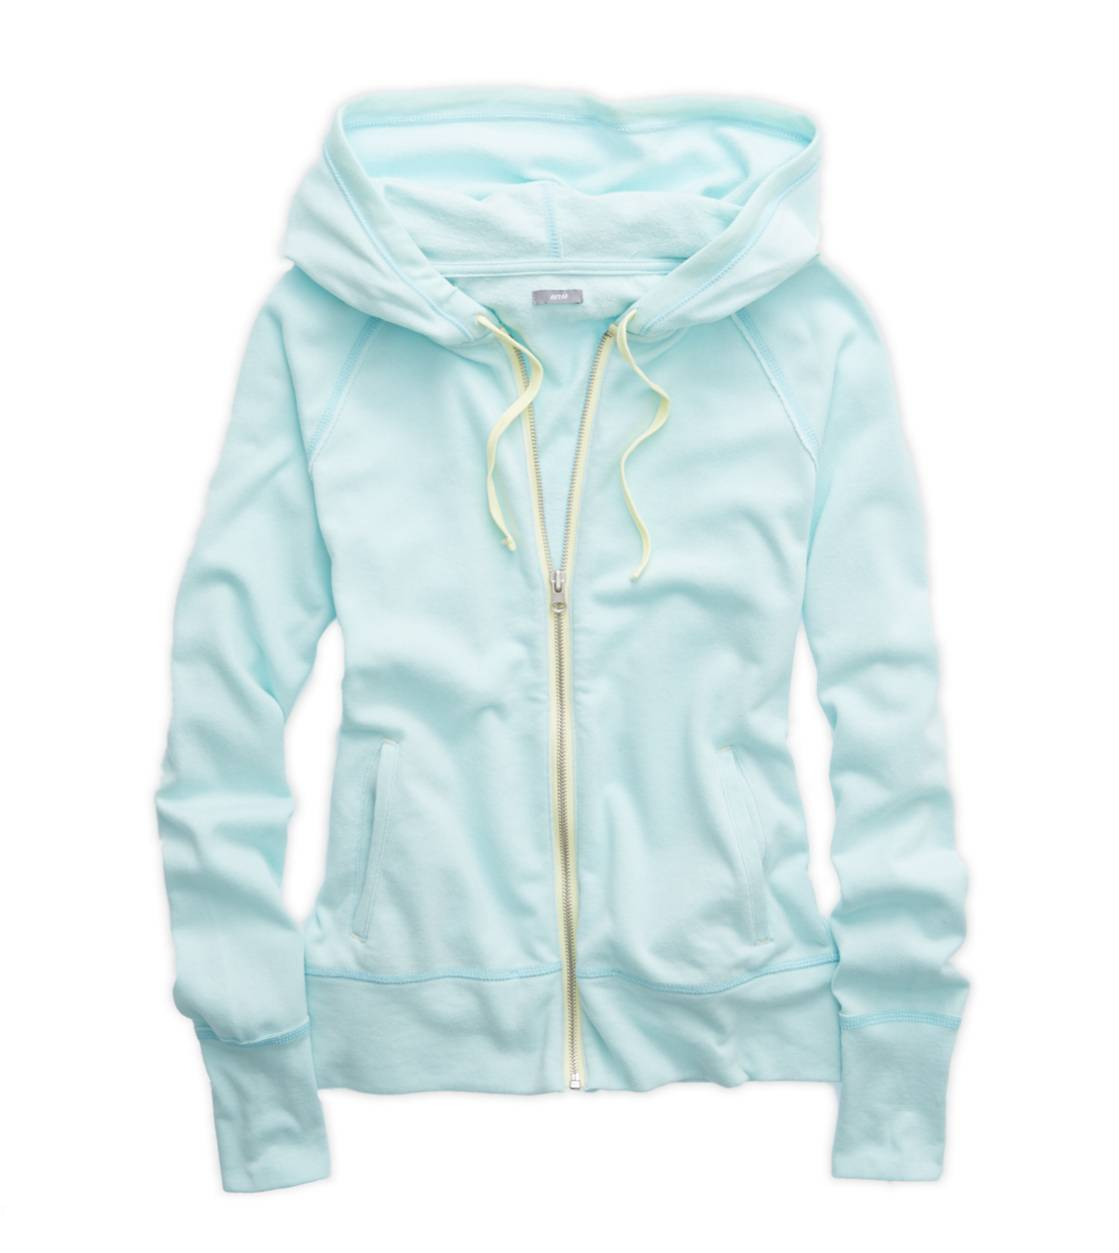 Spring Break Aerie Full Zip Hooded Sweatshirt